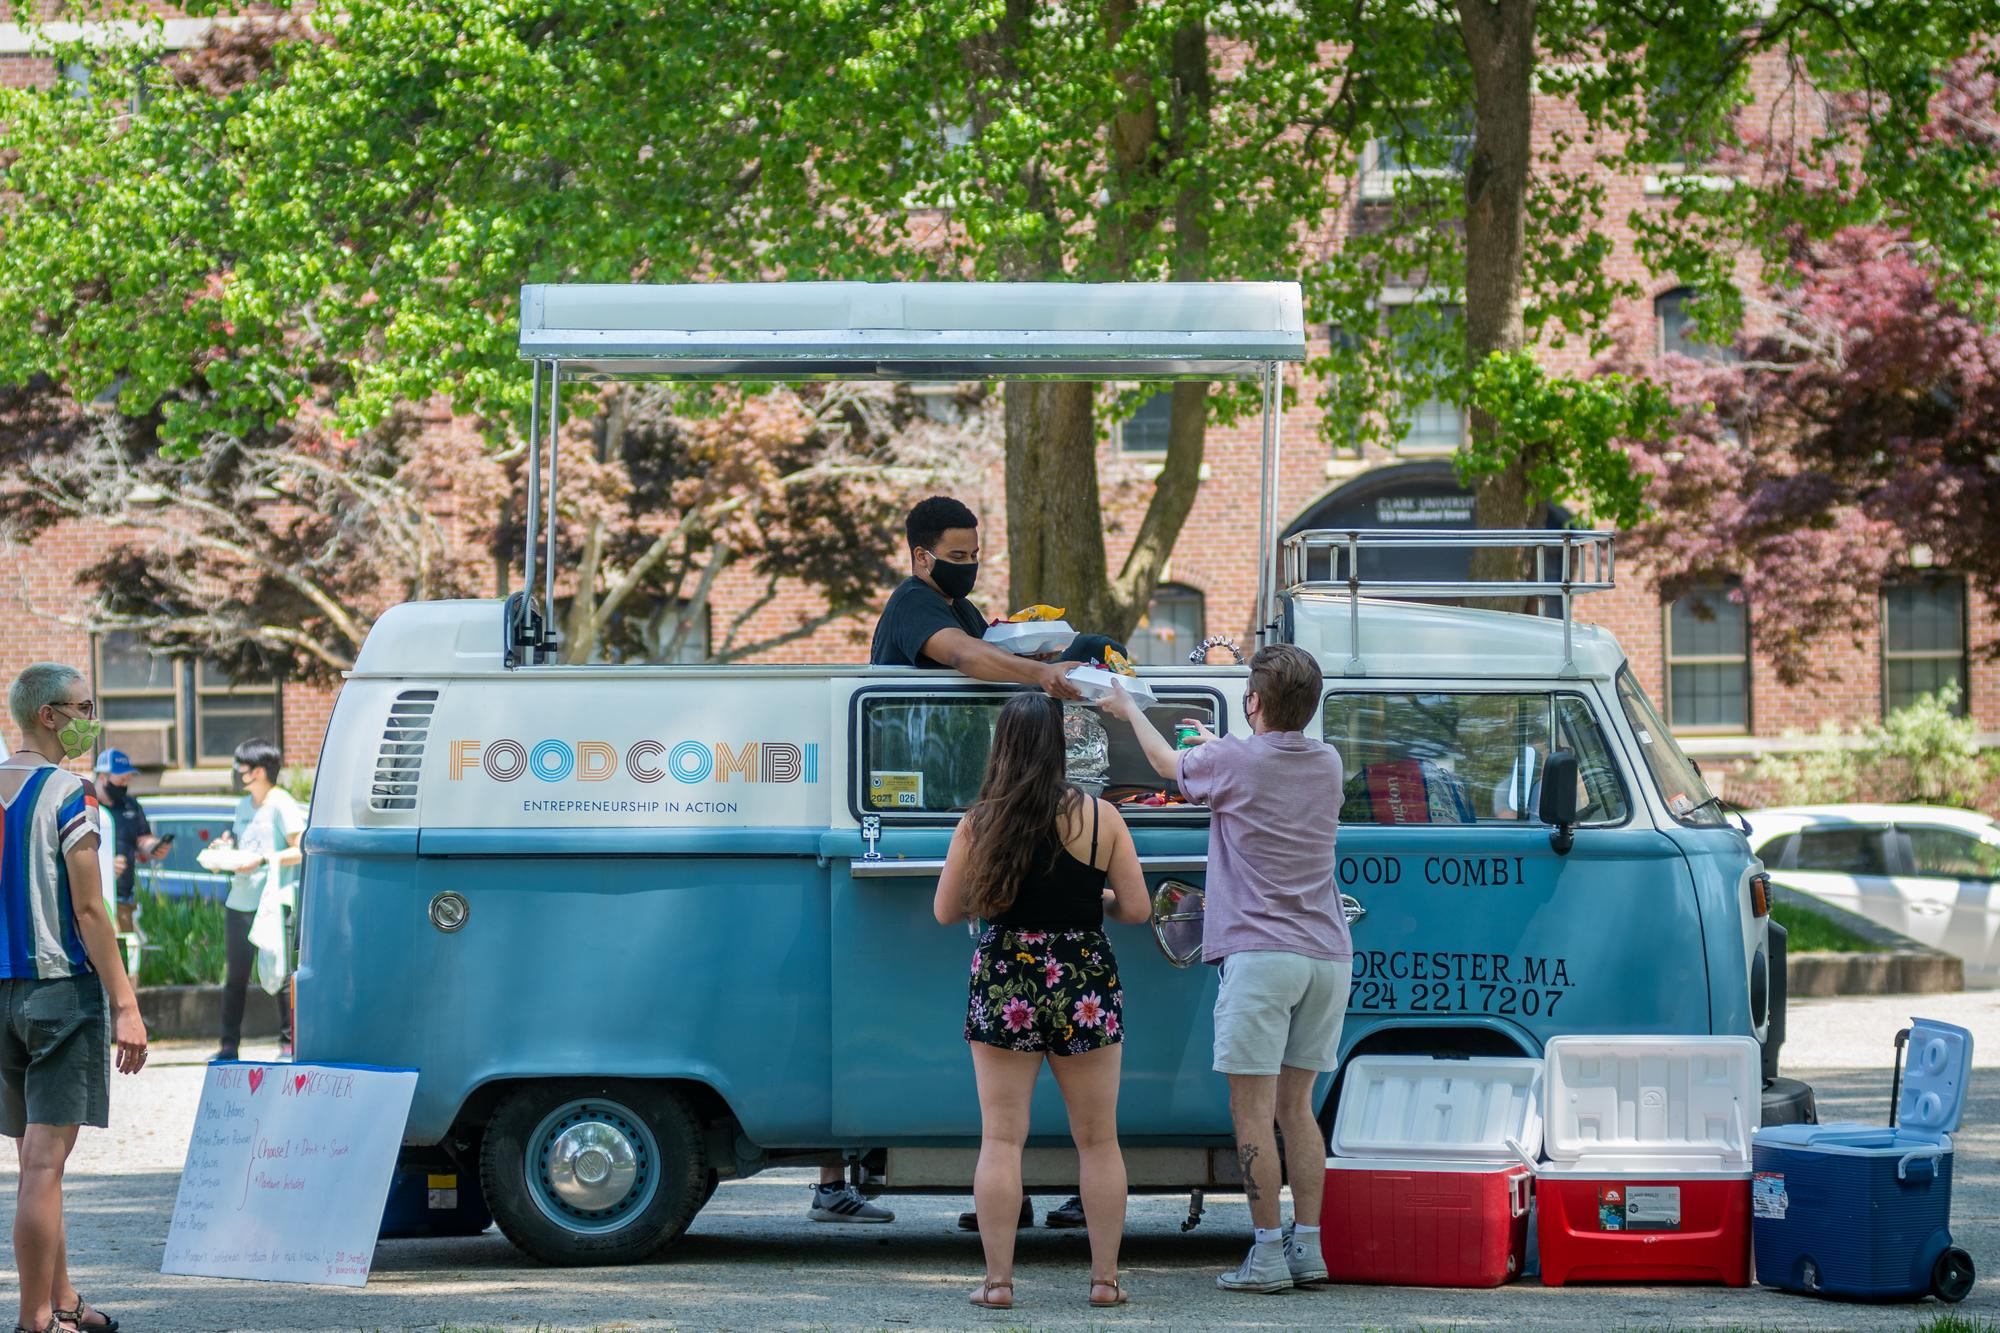 students serve food from a Volkswagen food truck